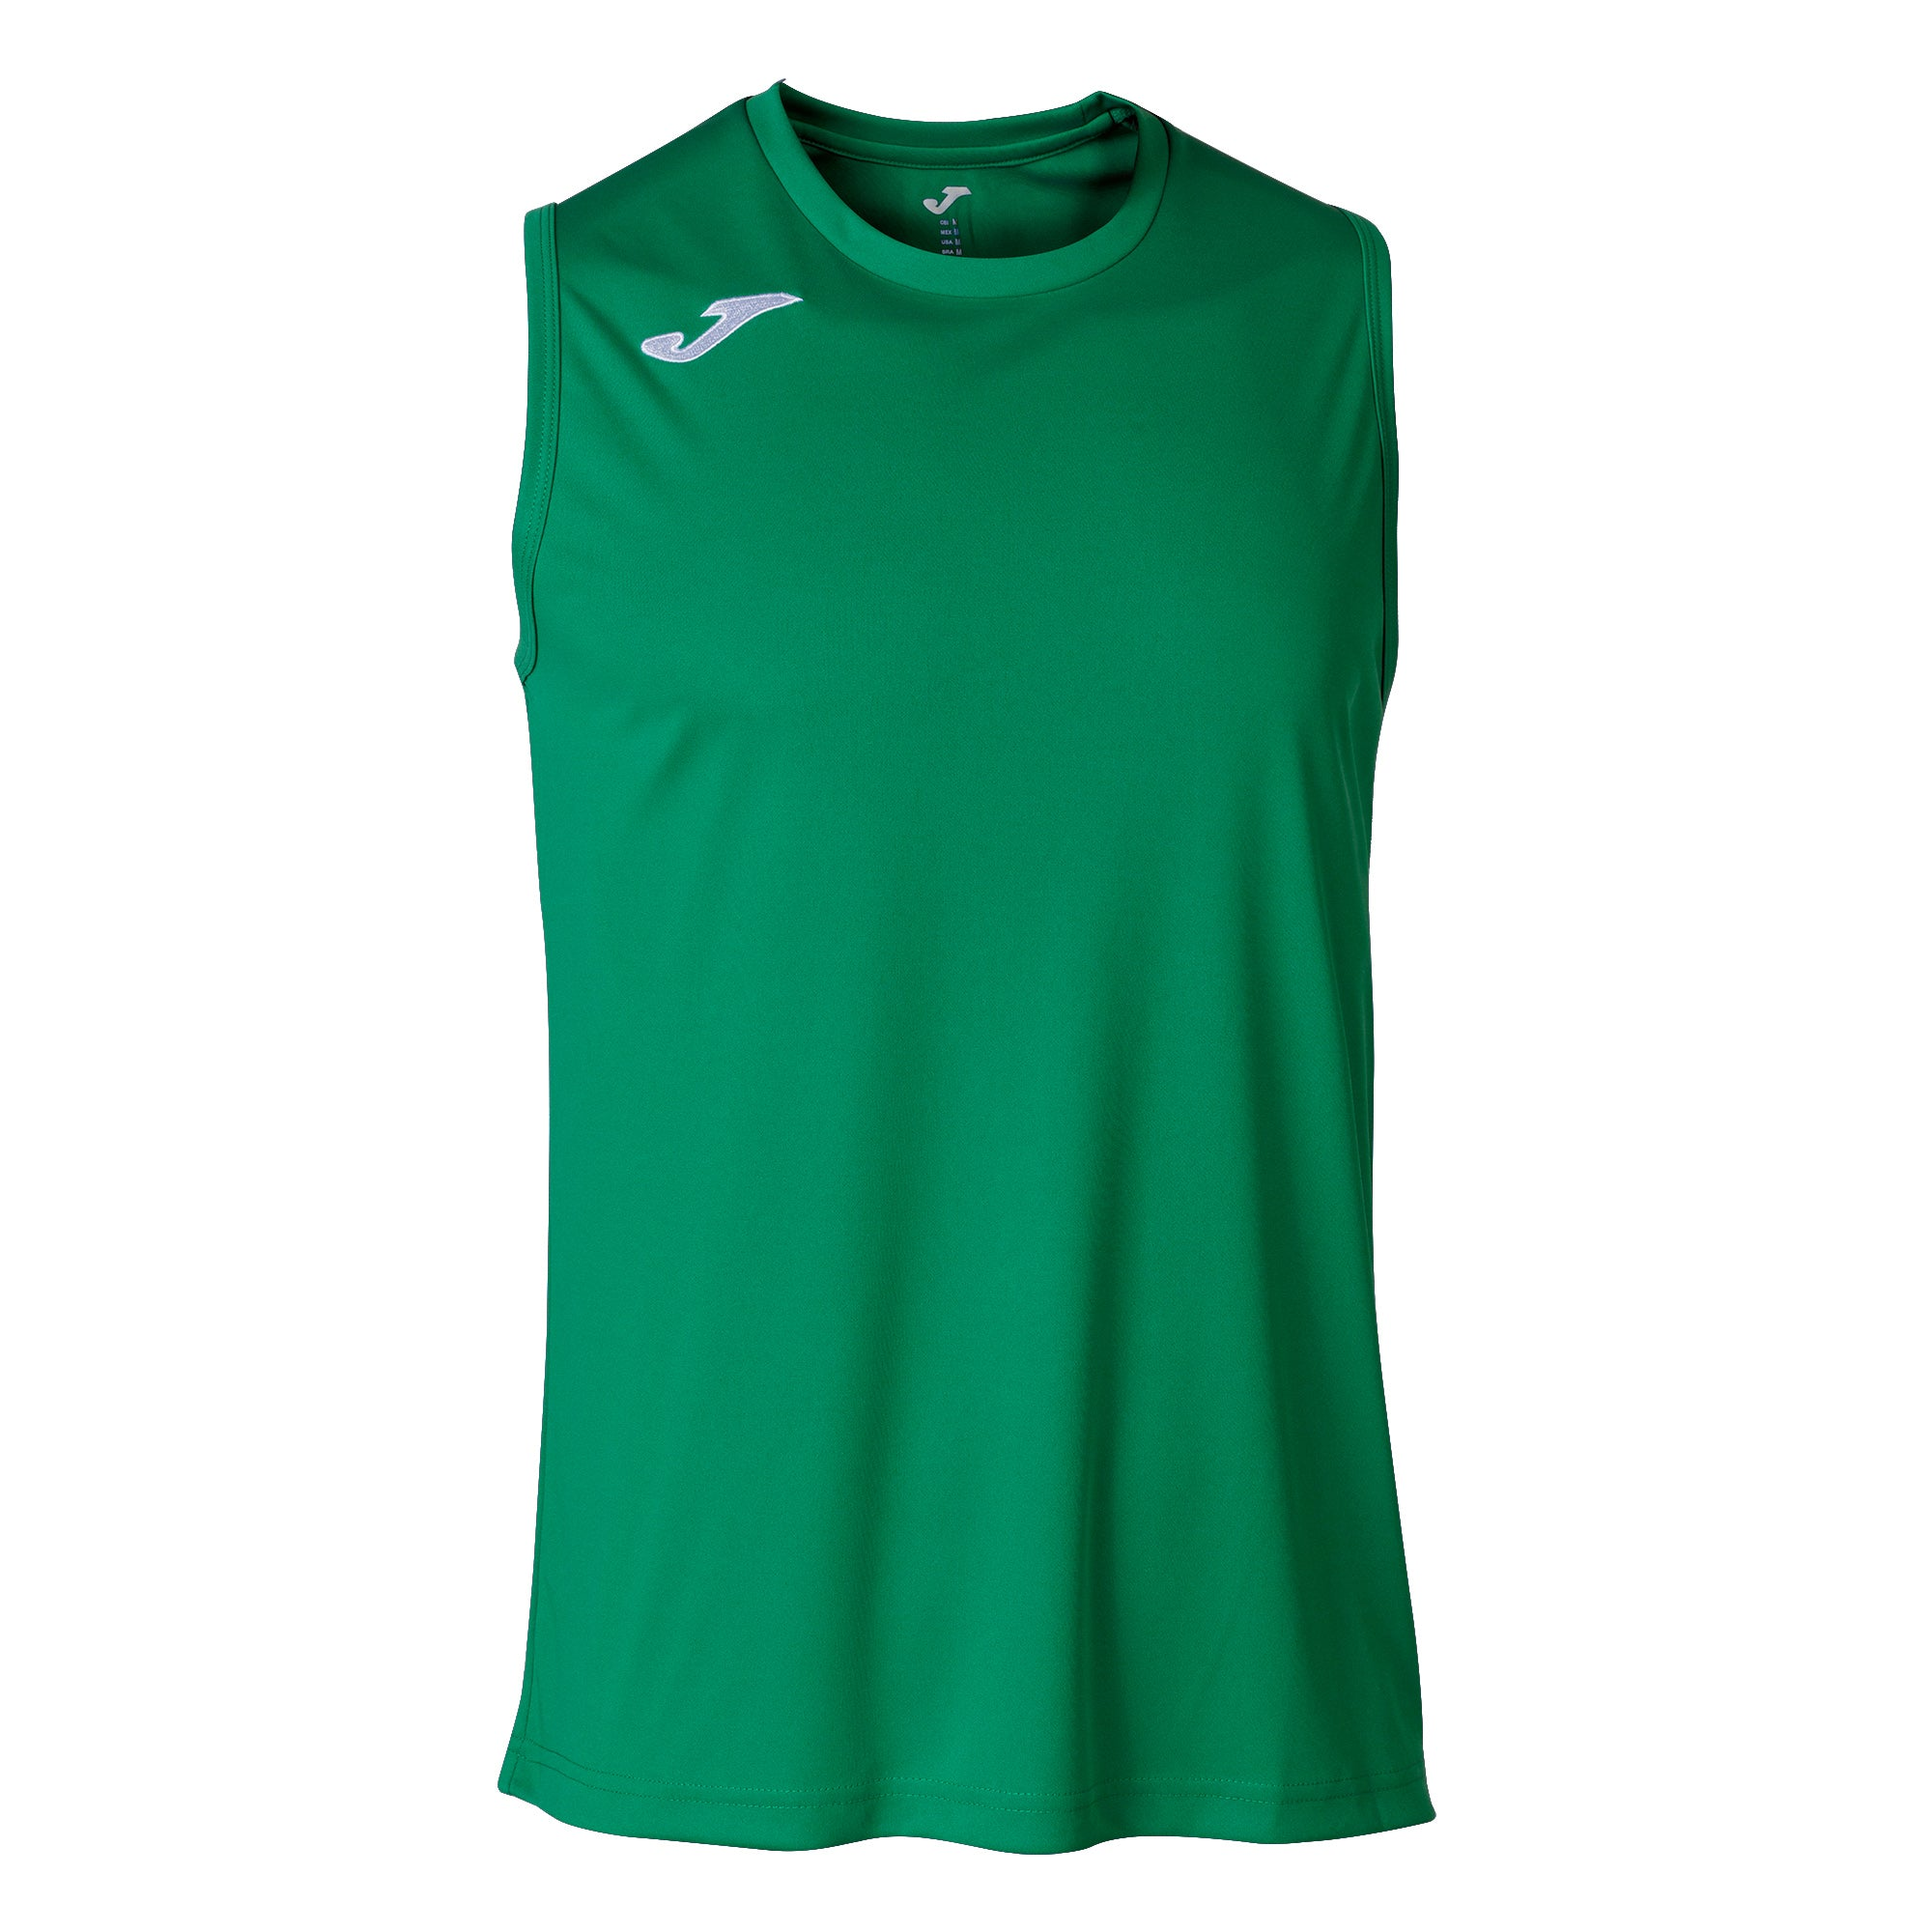 Teamwear - Joma Combi Sleeveless - Green - JO-101660-450